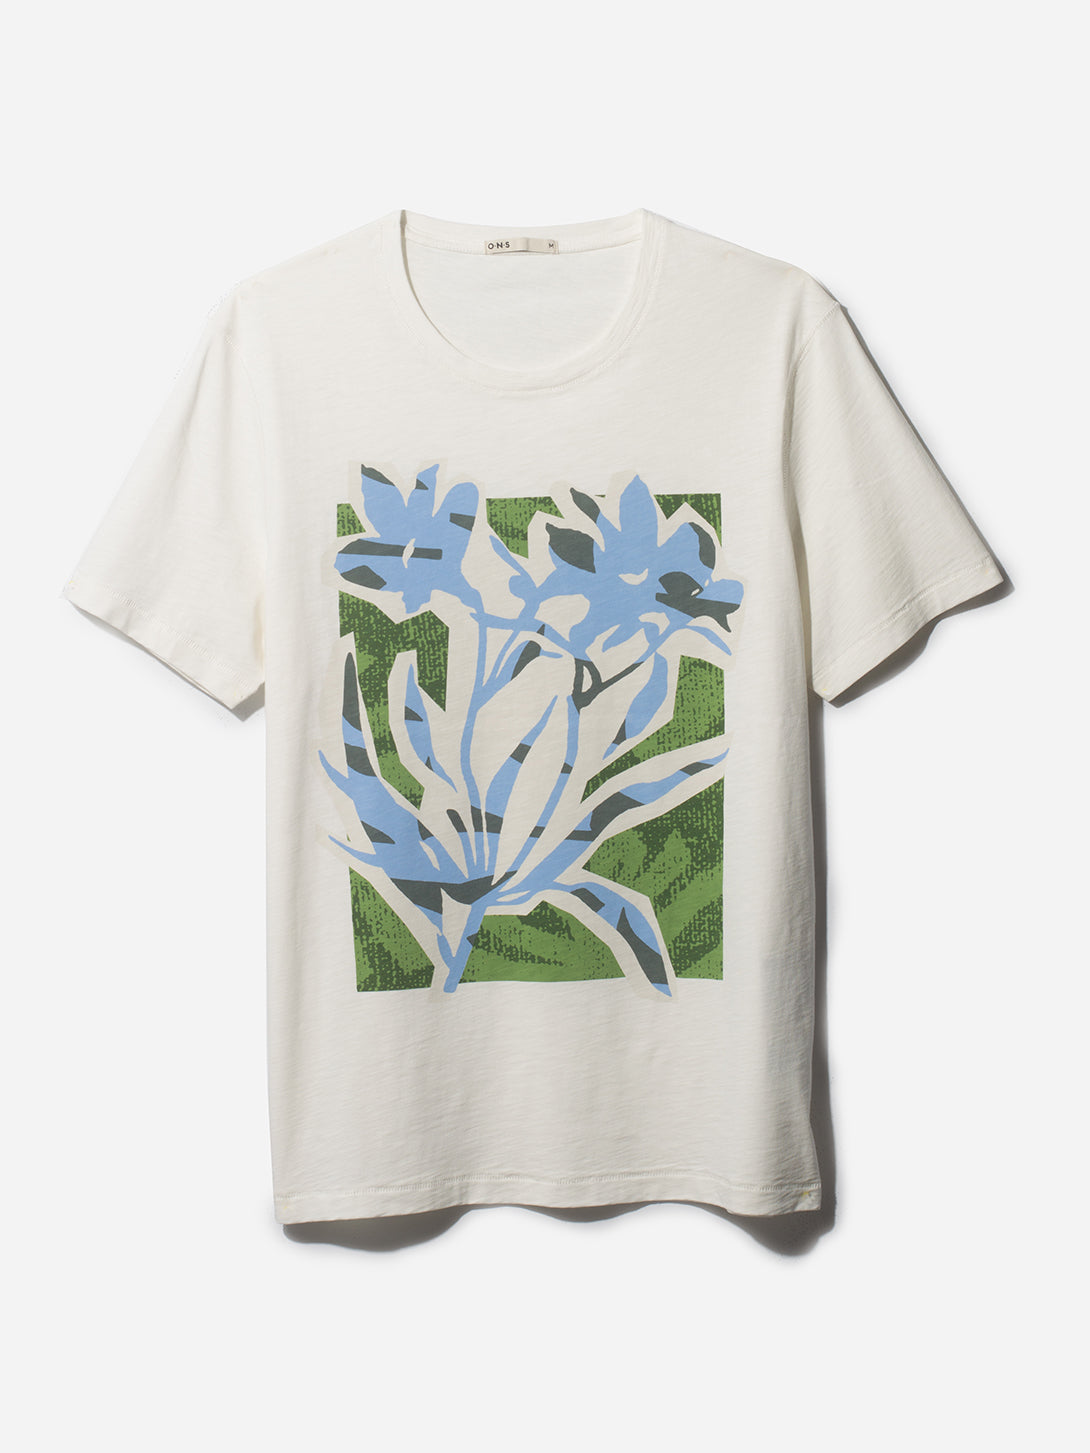 FLOWER VILLAGE CREW BLUE ONS CLOTHING